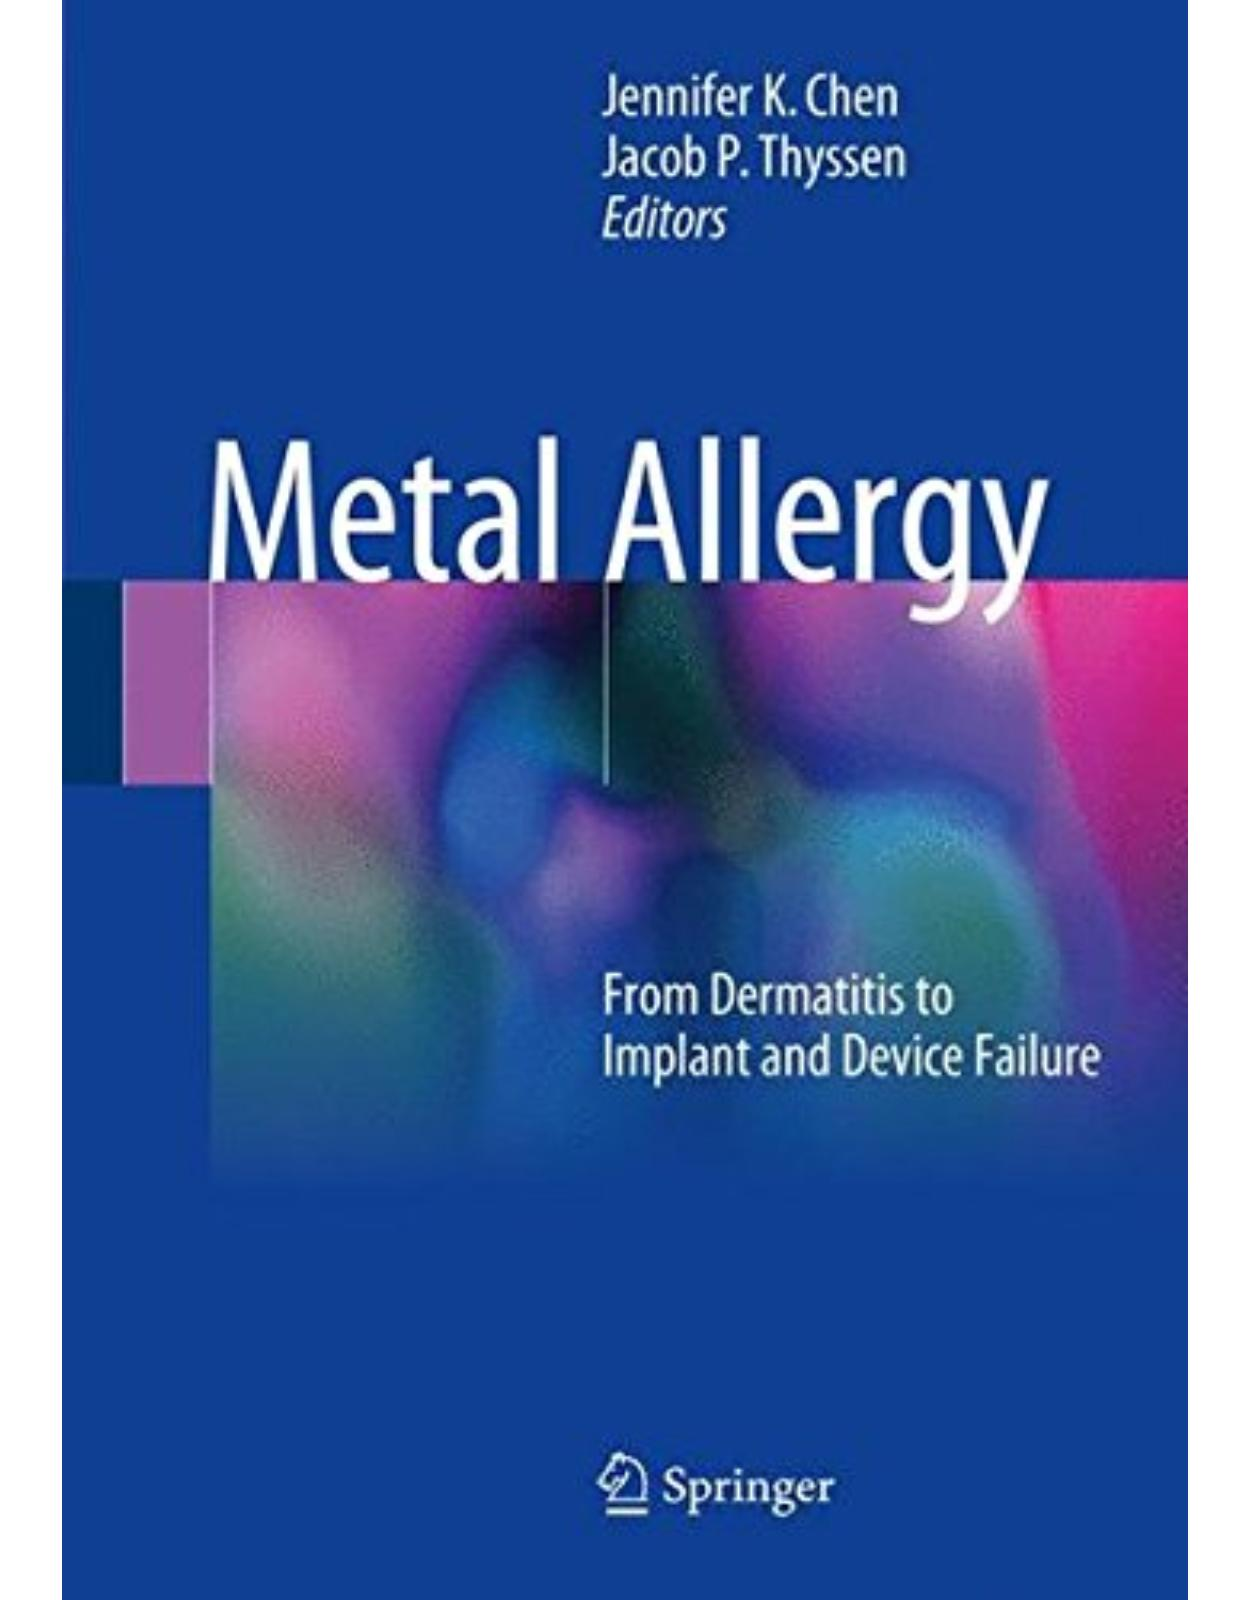 Metal Allergy: From Dermatitis to Implant and Device Failure